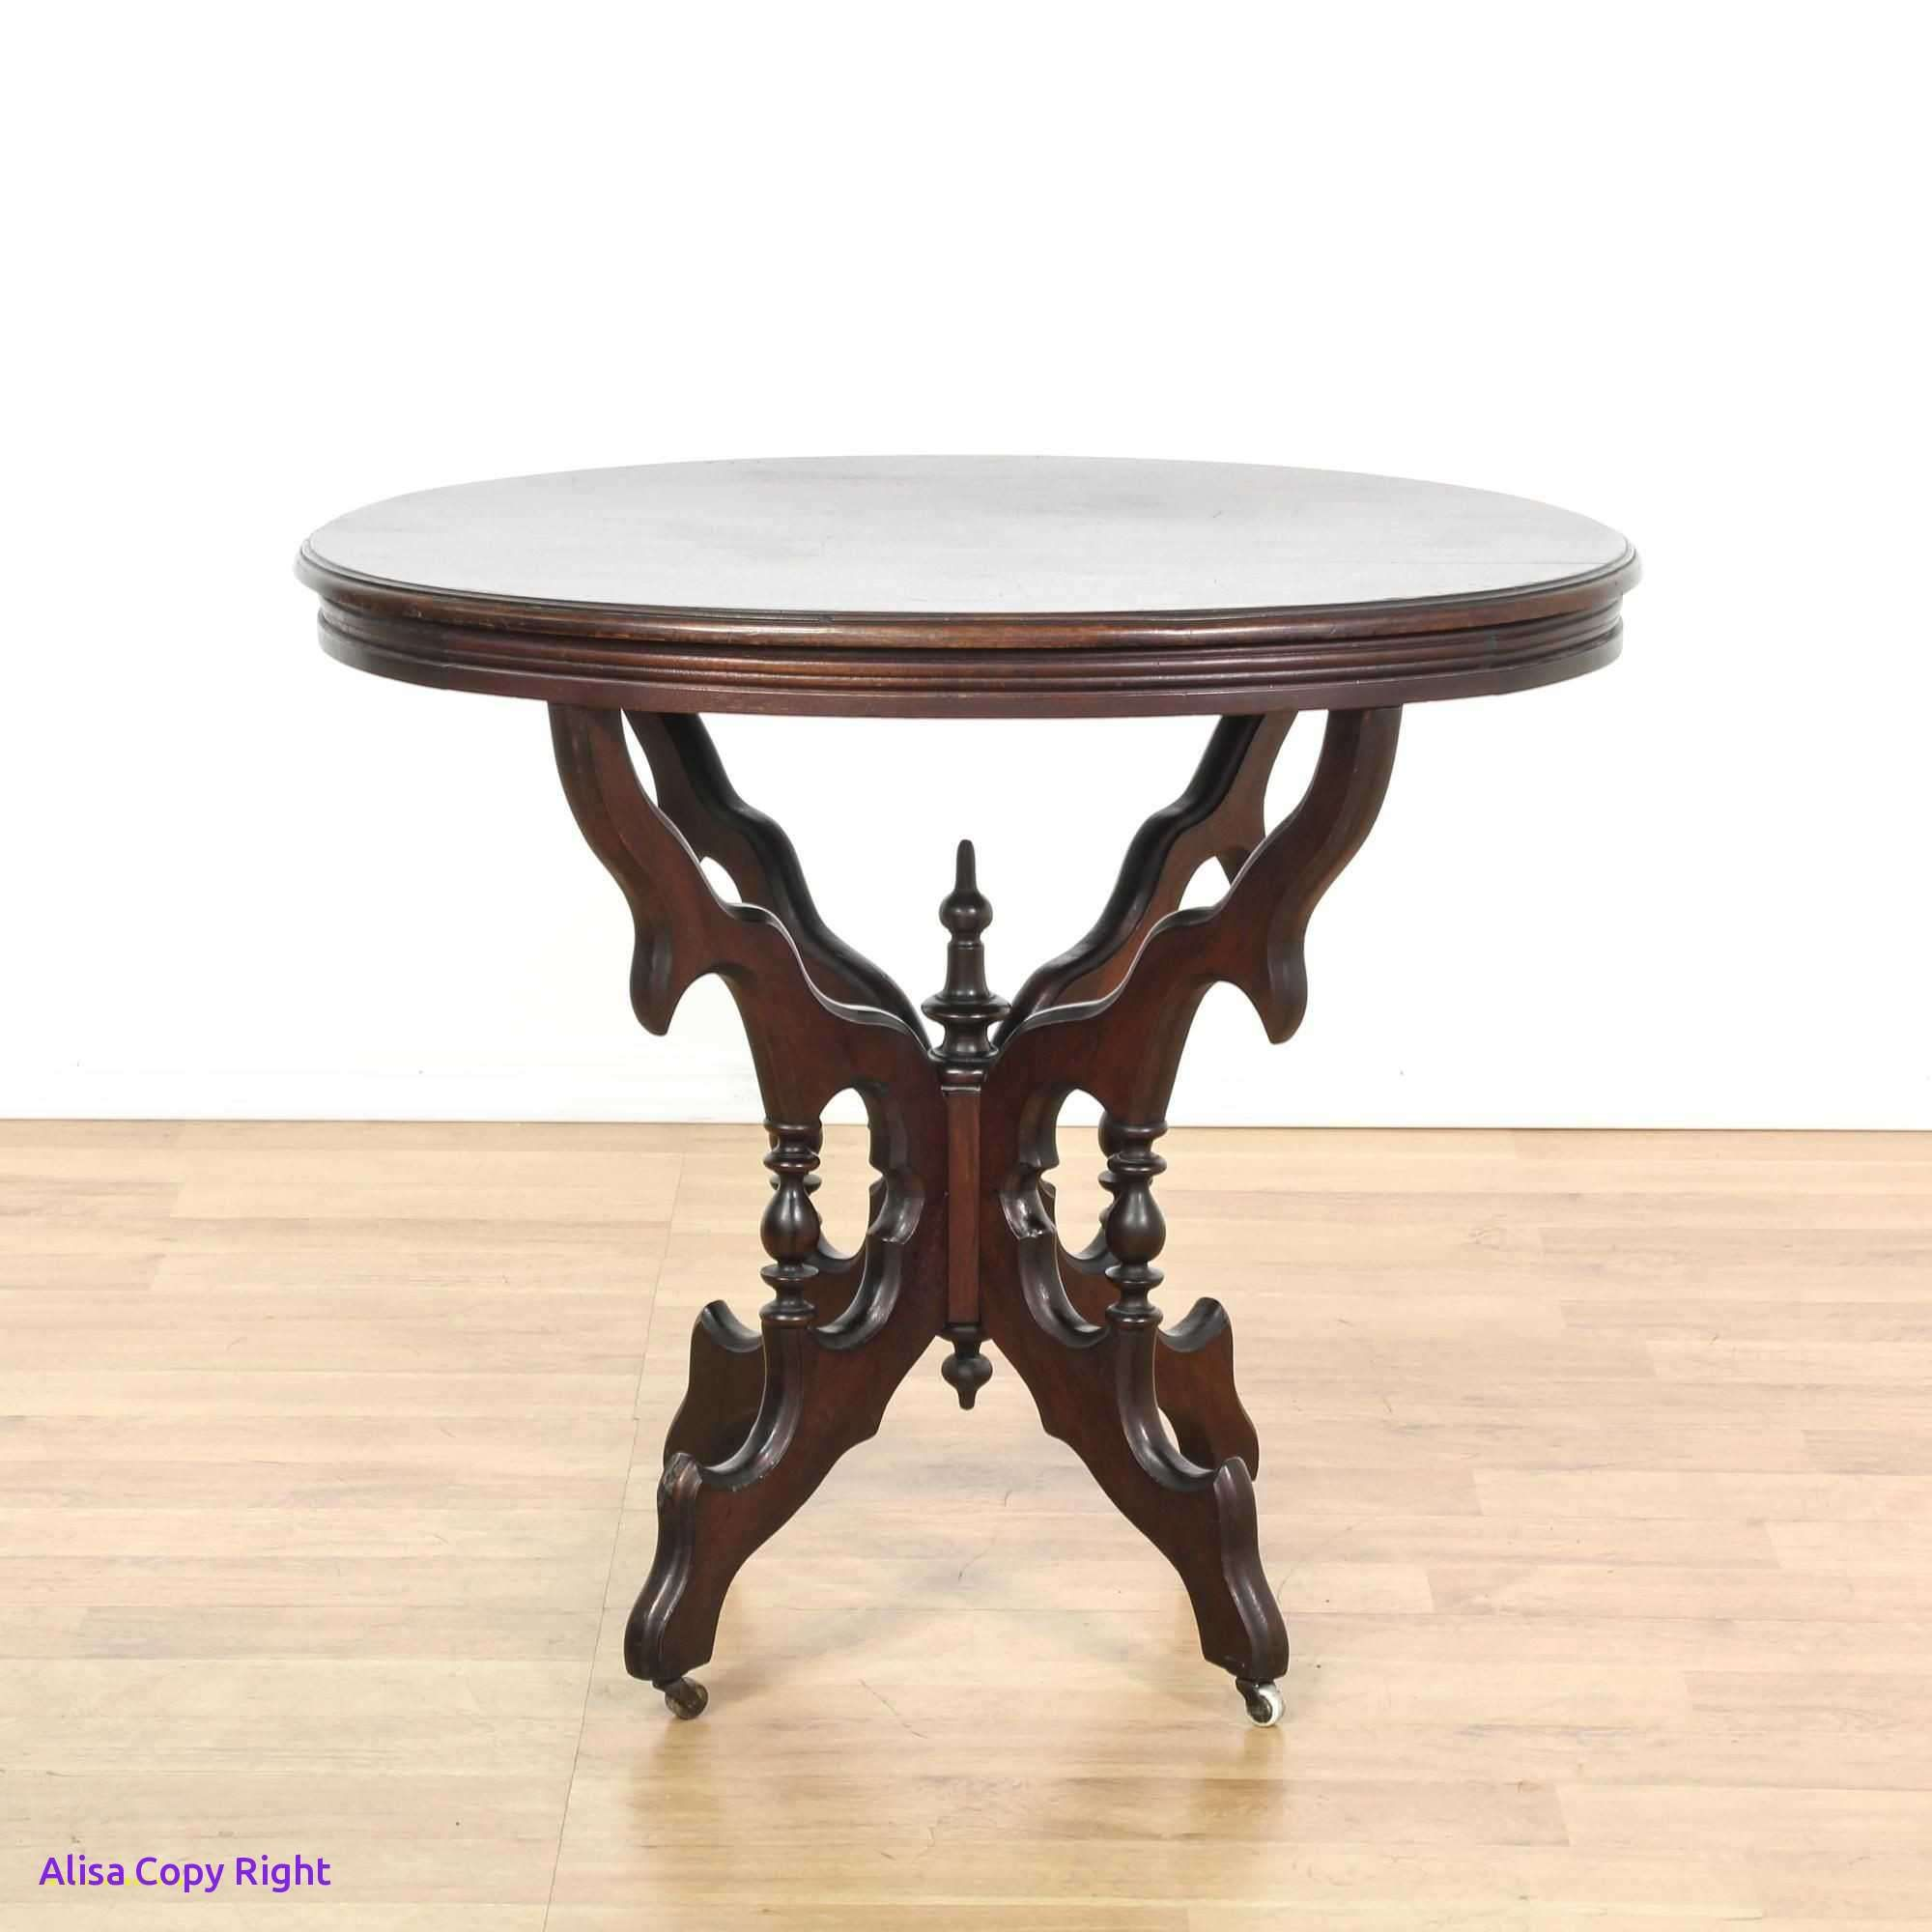 Best Of Modern Coffee Tables Homedecoration Homedecorations Homedecorationideas Homedecor Round Coffee Table Modern Coffee Table Wood Modern Coffee Tables [ 2000 x 2000 Pixel ]